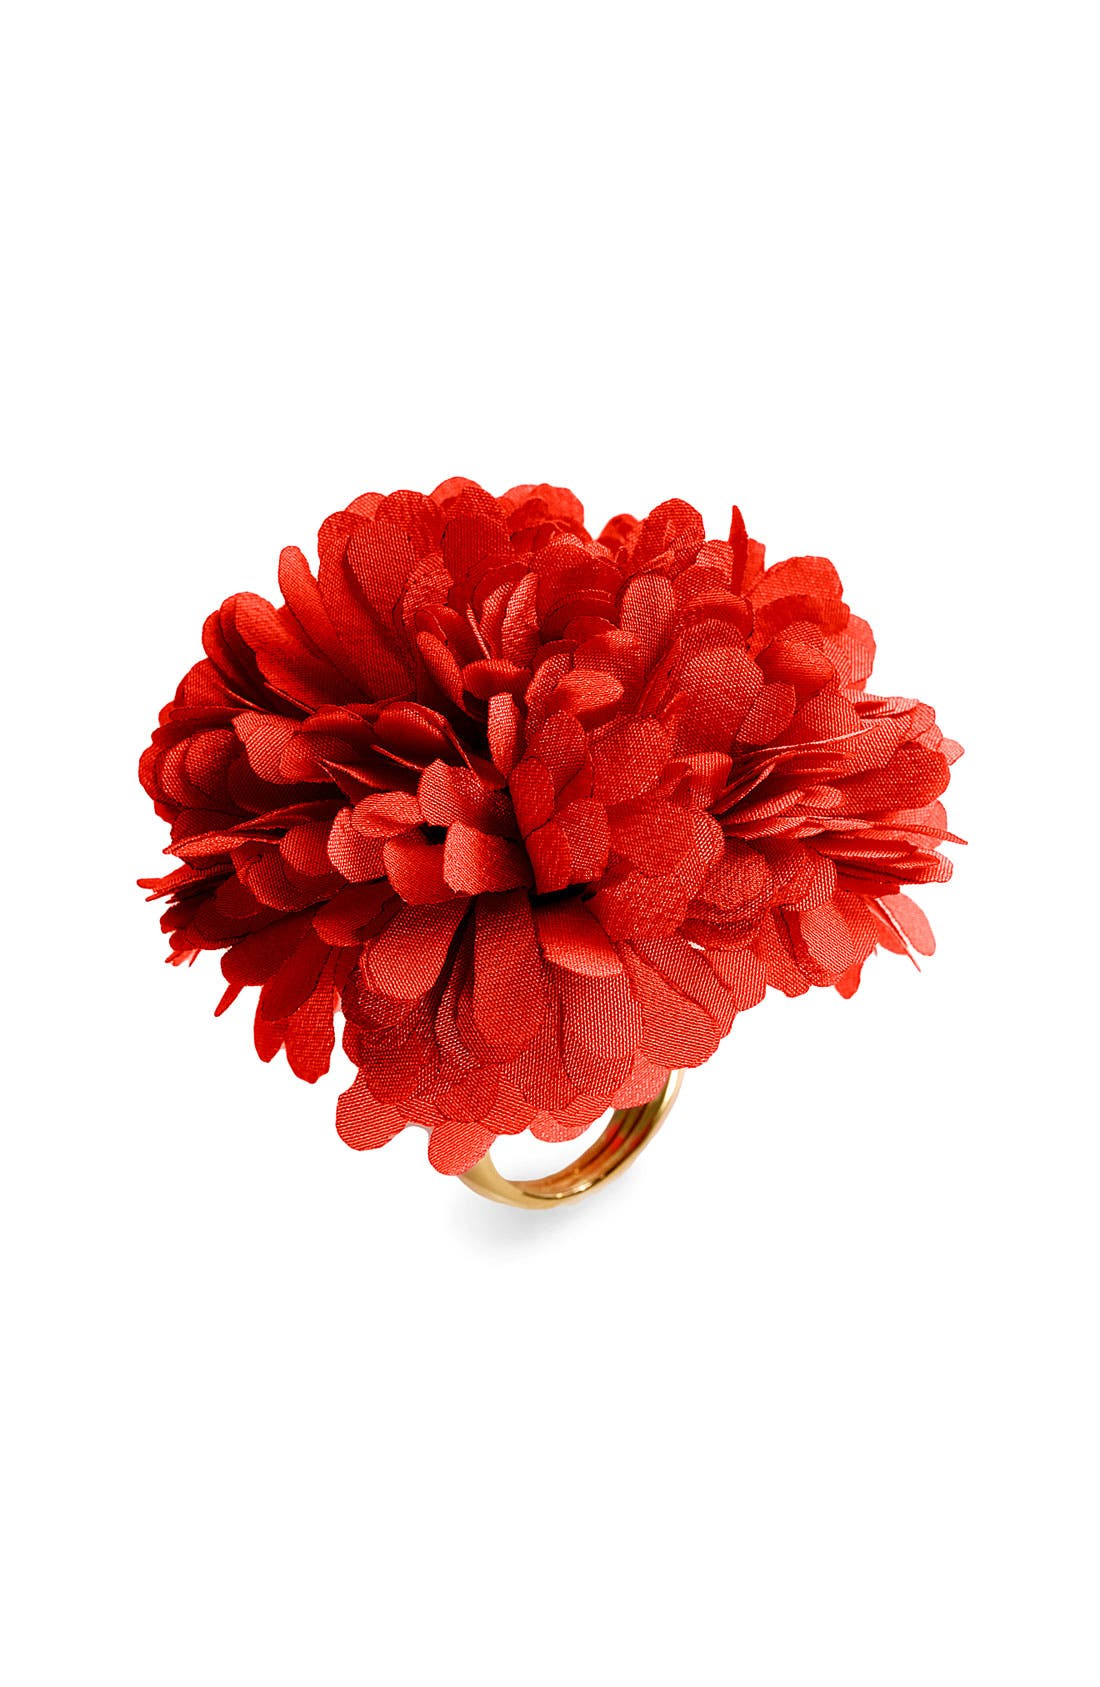 Main Image - kate spade new york 'date night' floral ring